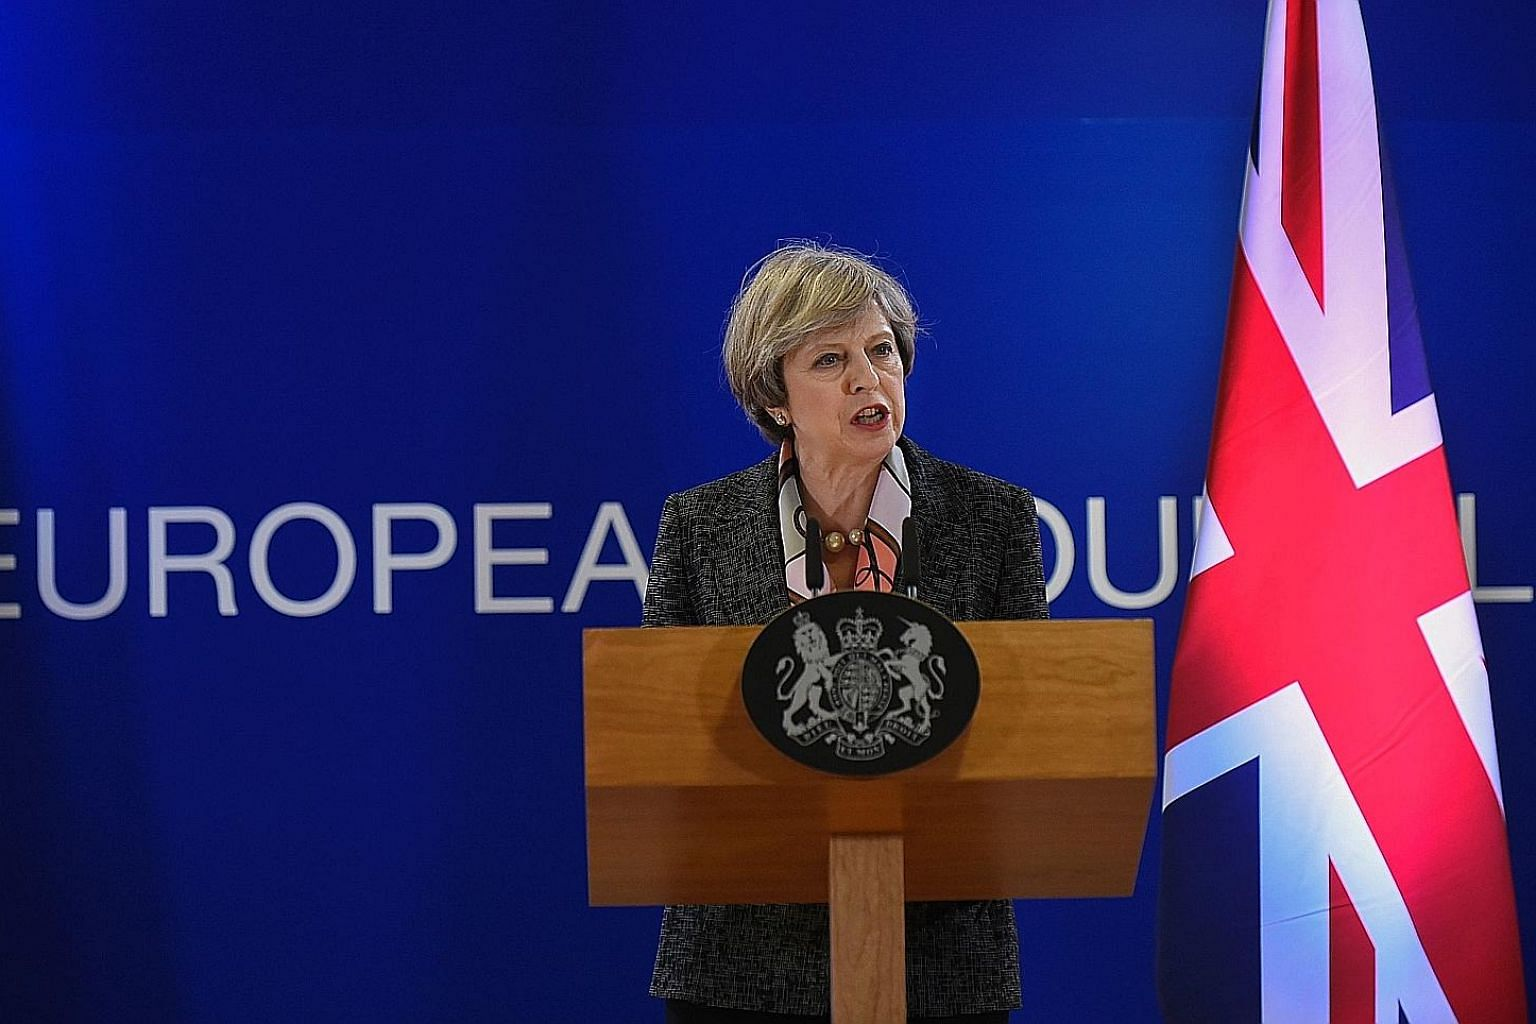 British Prime Minister Theresa May is regarded by counterparts as an unyielding negotiating partner: utterly straight but not flexible enough to find compromises on the hoof. Amid the intensity of the final round of Brexit talks, some believe this co